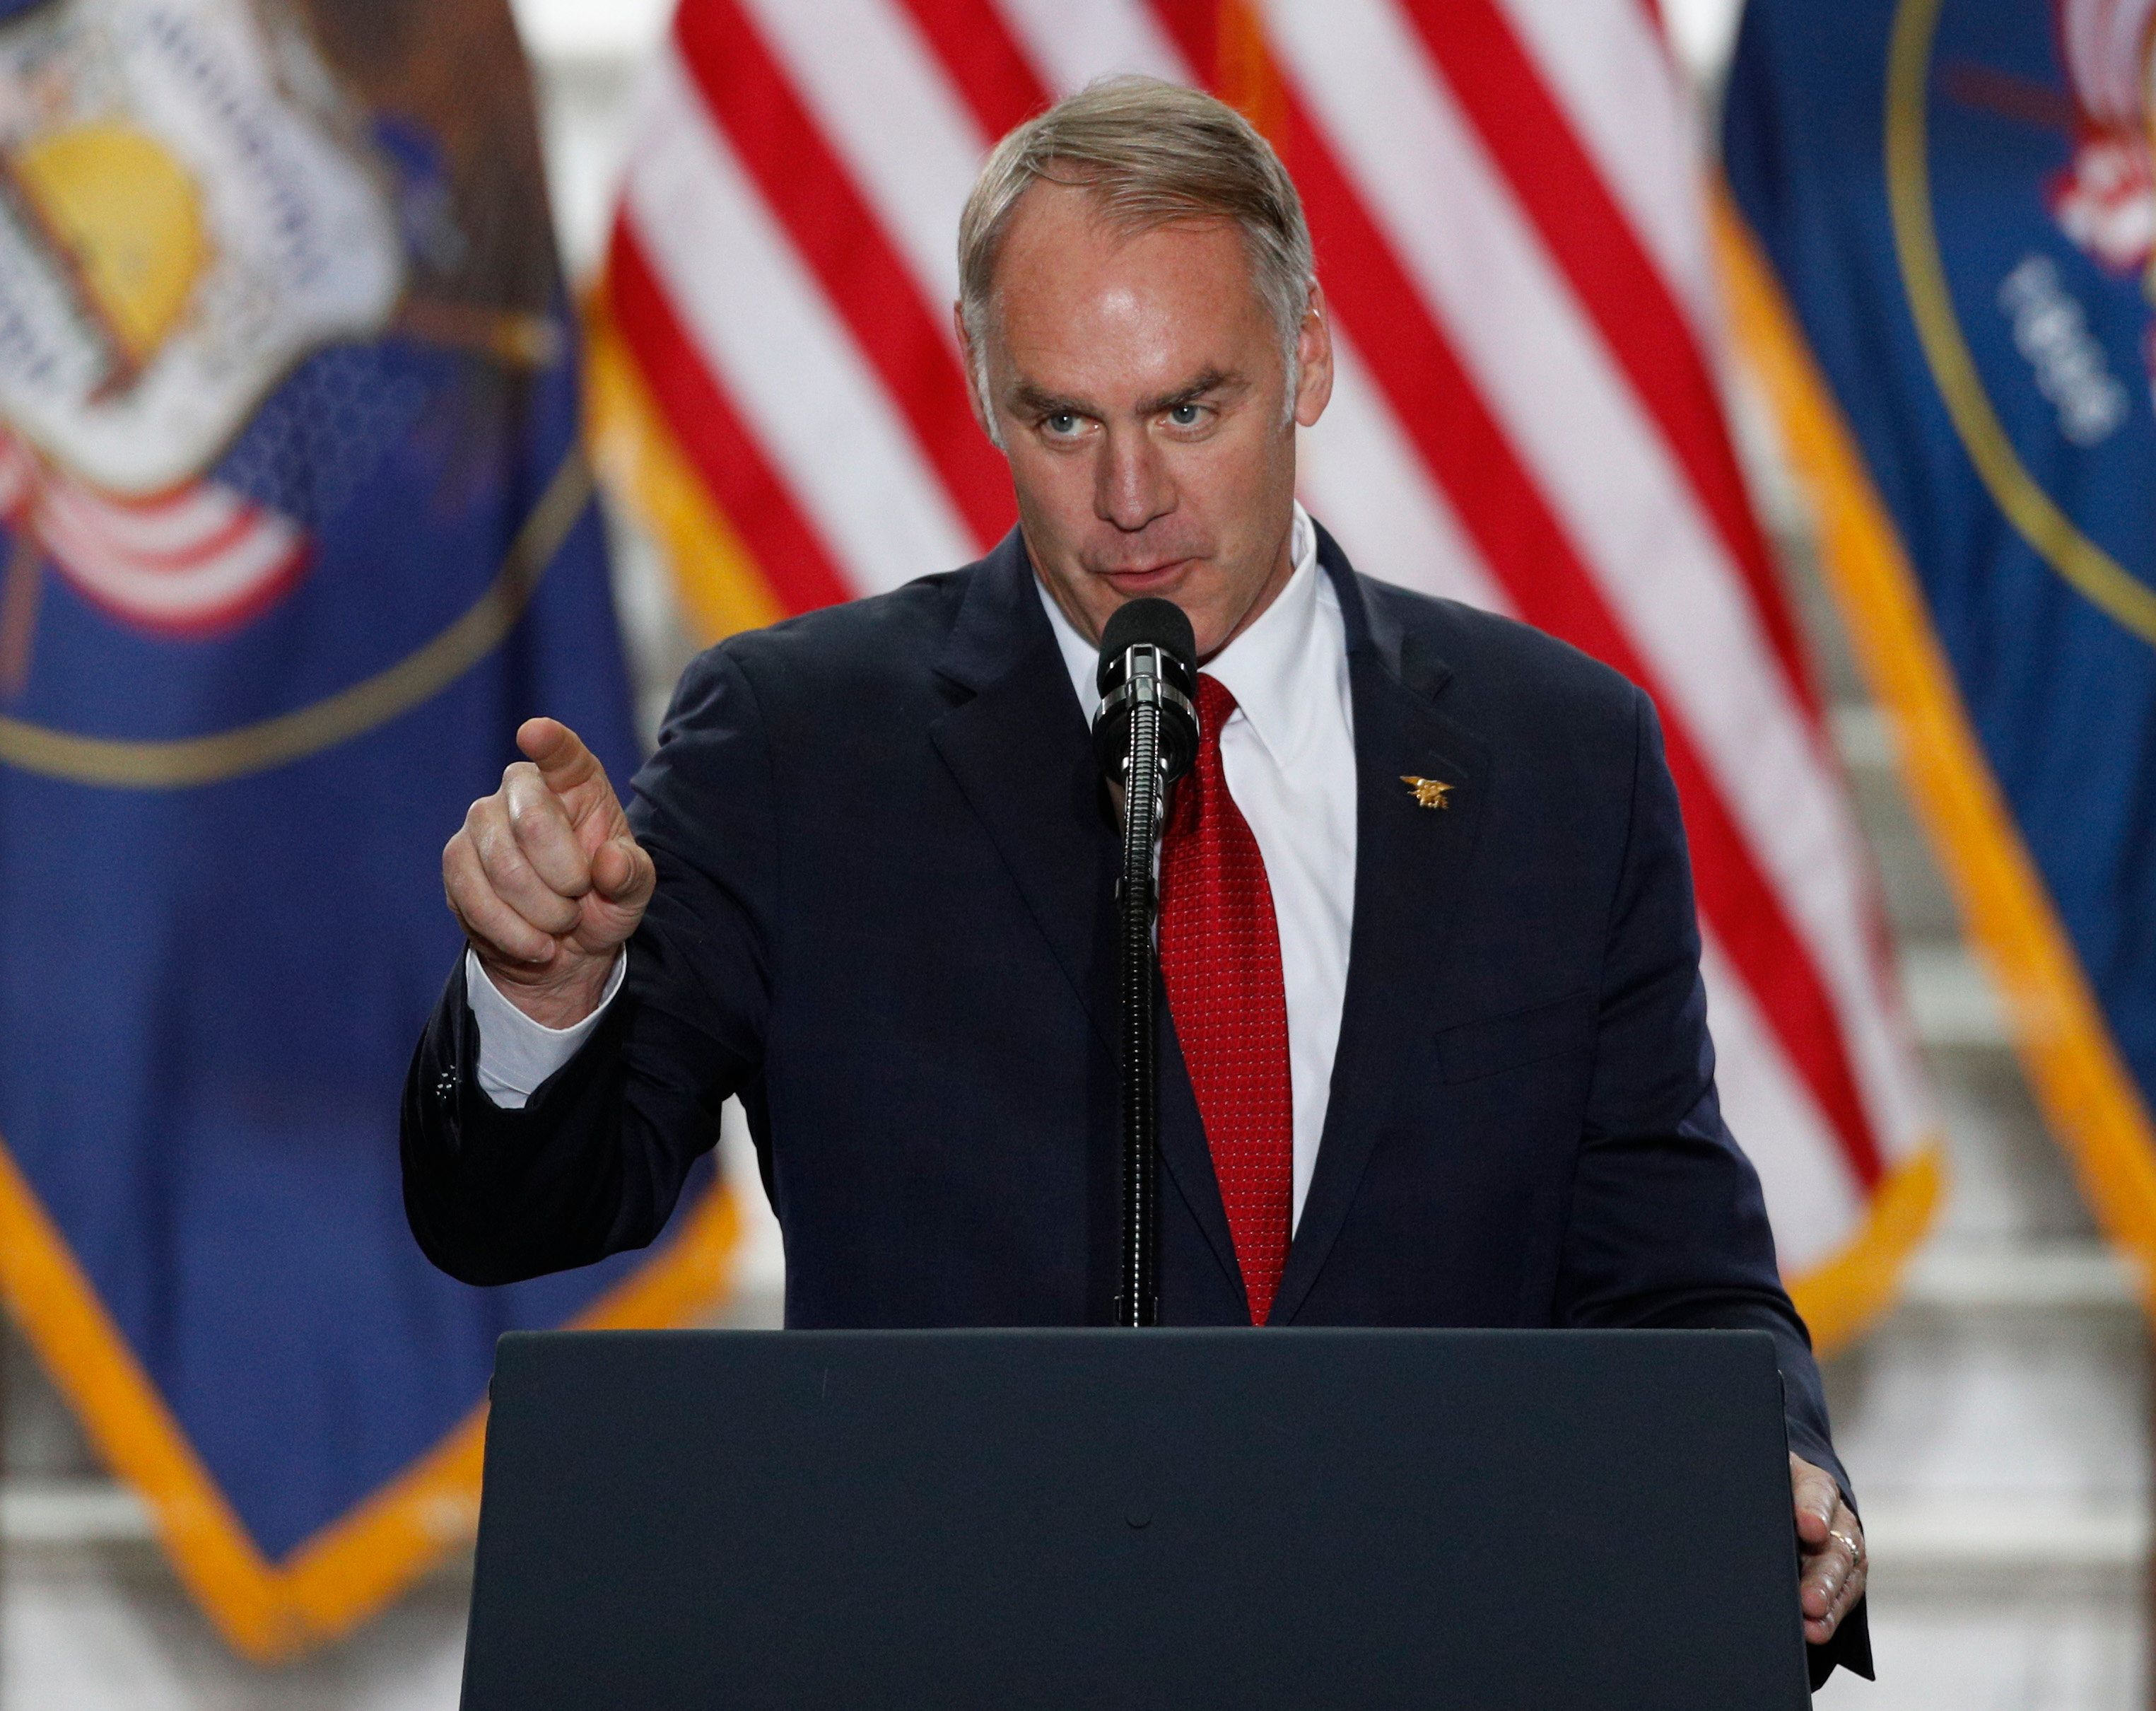 Zinke Booked Gov't Helicopters to Attend DC Events